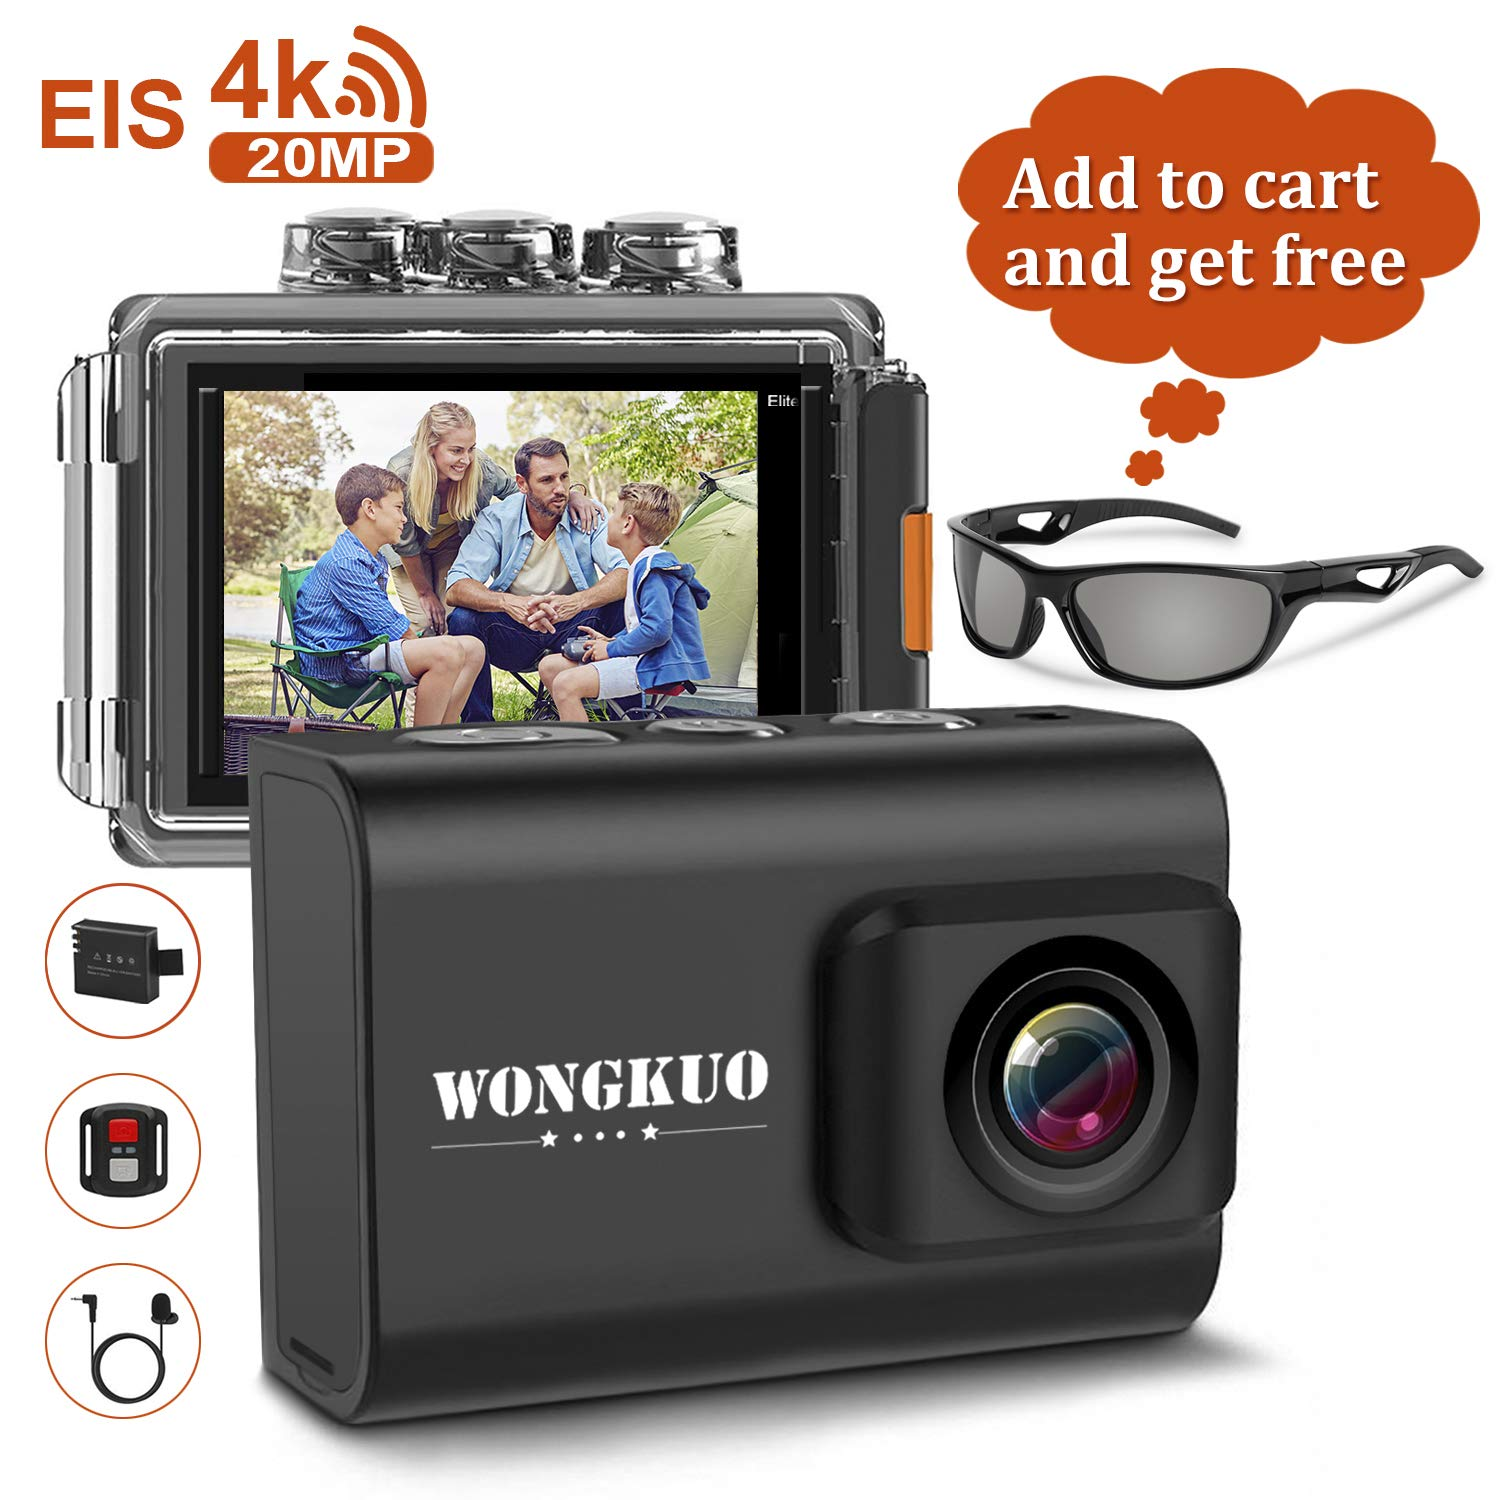 WONGKUO Upgraded Action Camera 4K 20MP Ultra HD WiFi Sport Camera with EIS 30m Waterproof Camera 170°Wide Angle Camcorder 2'' LCD Screen Support External Microphone Remote Control with Accessories Kit